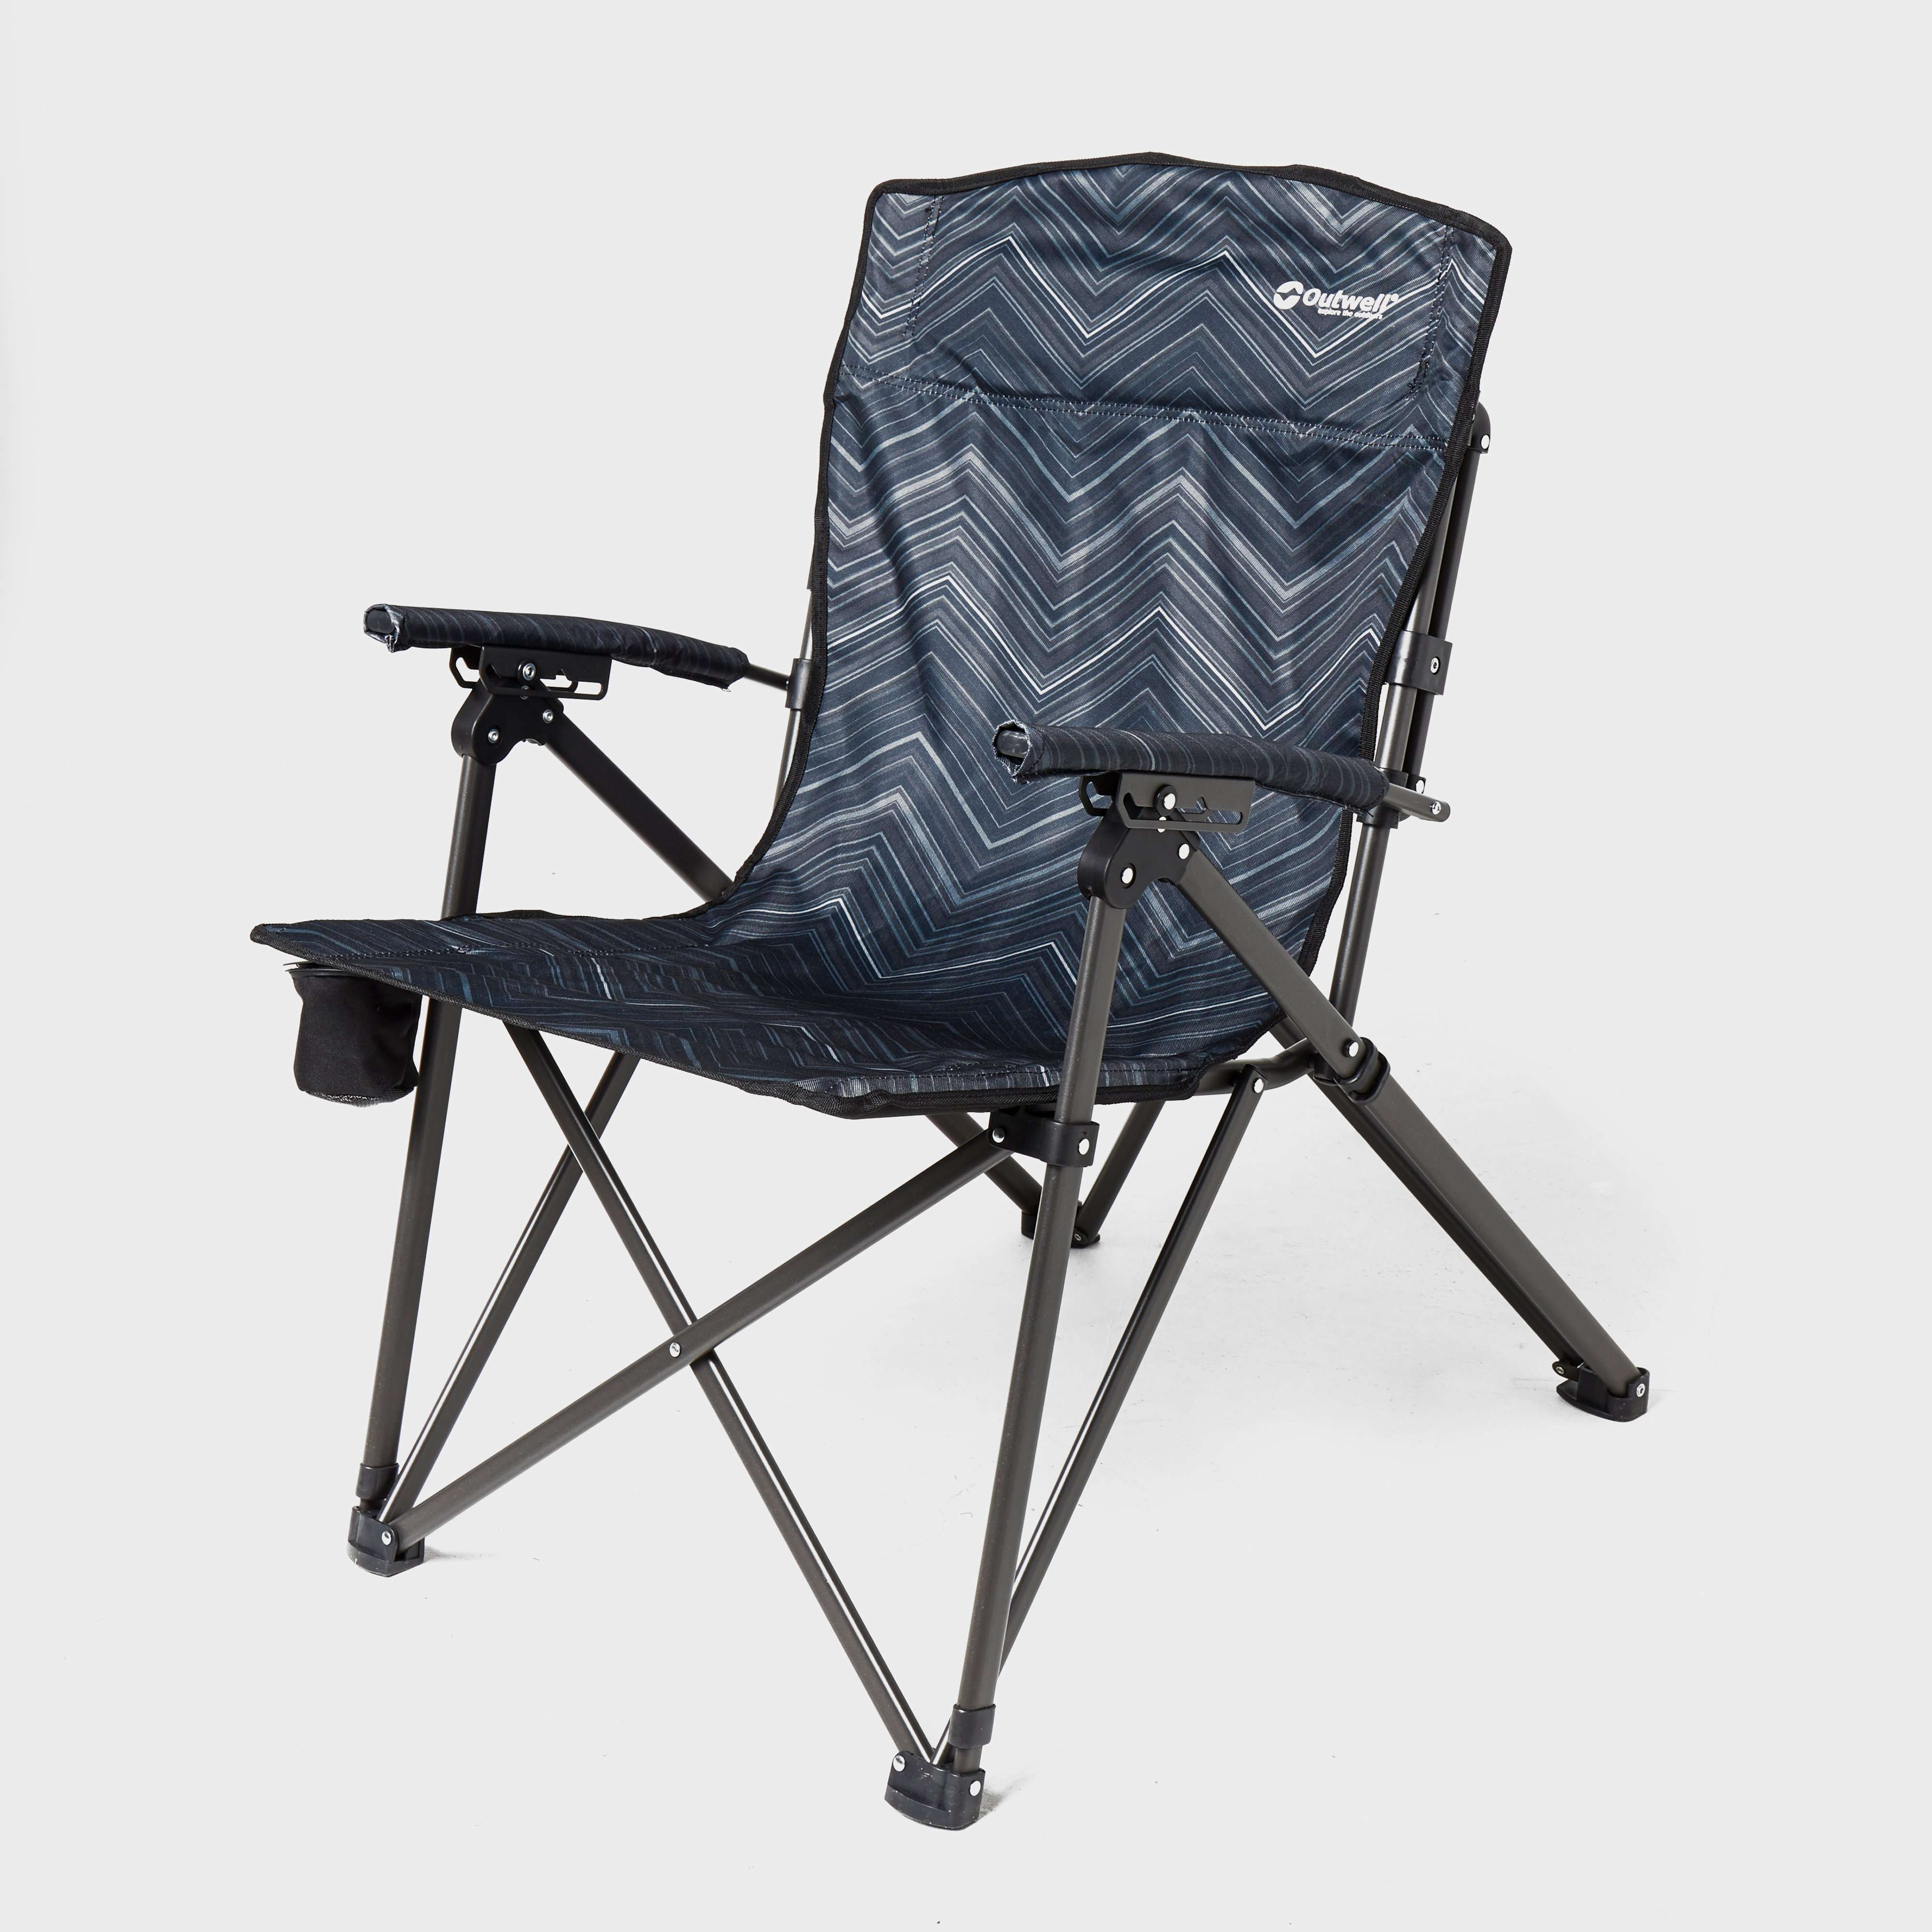 OUTWELL Palena Hills Camping Chair